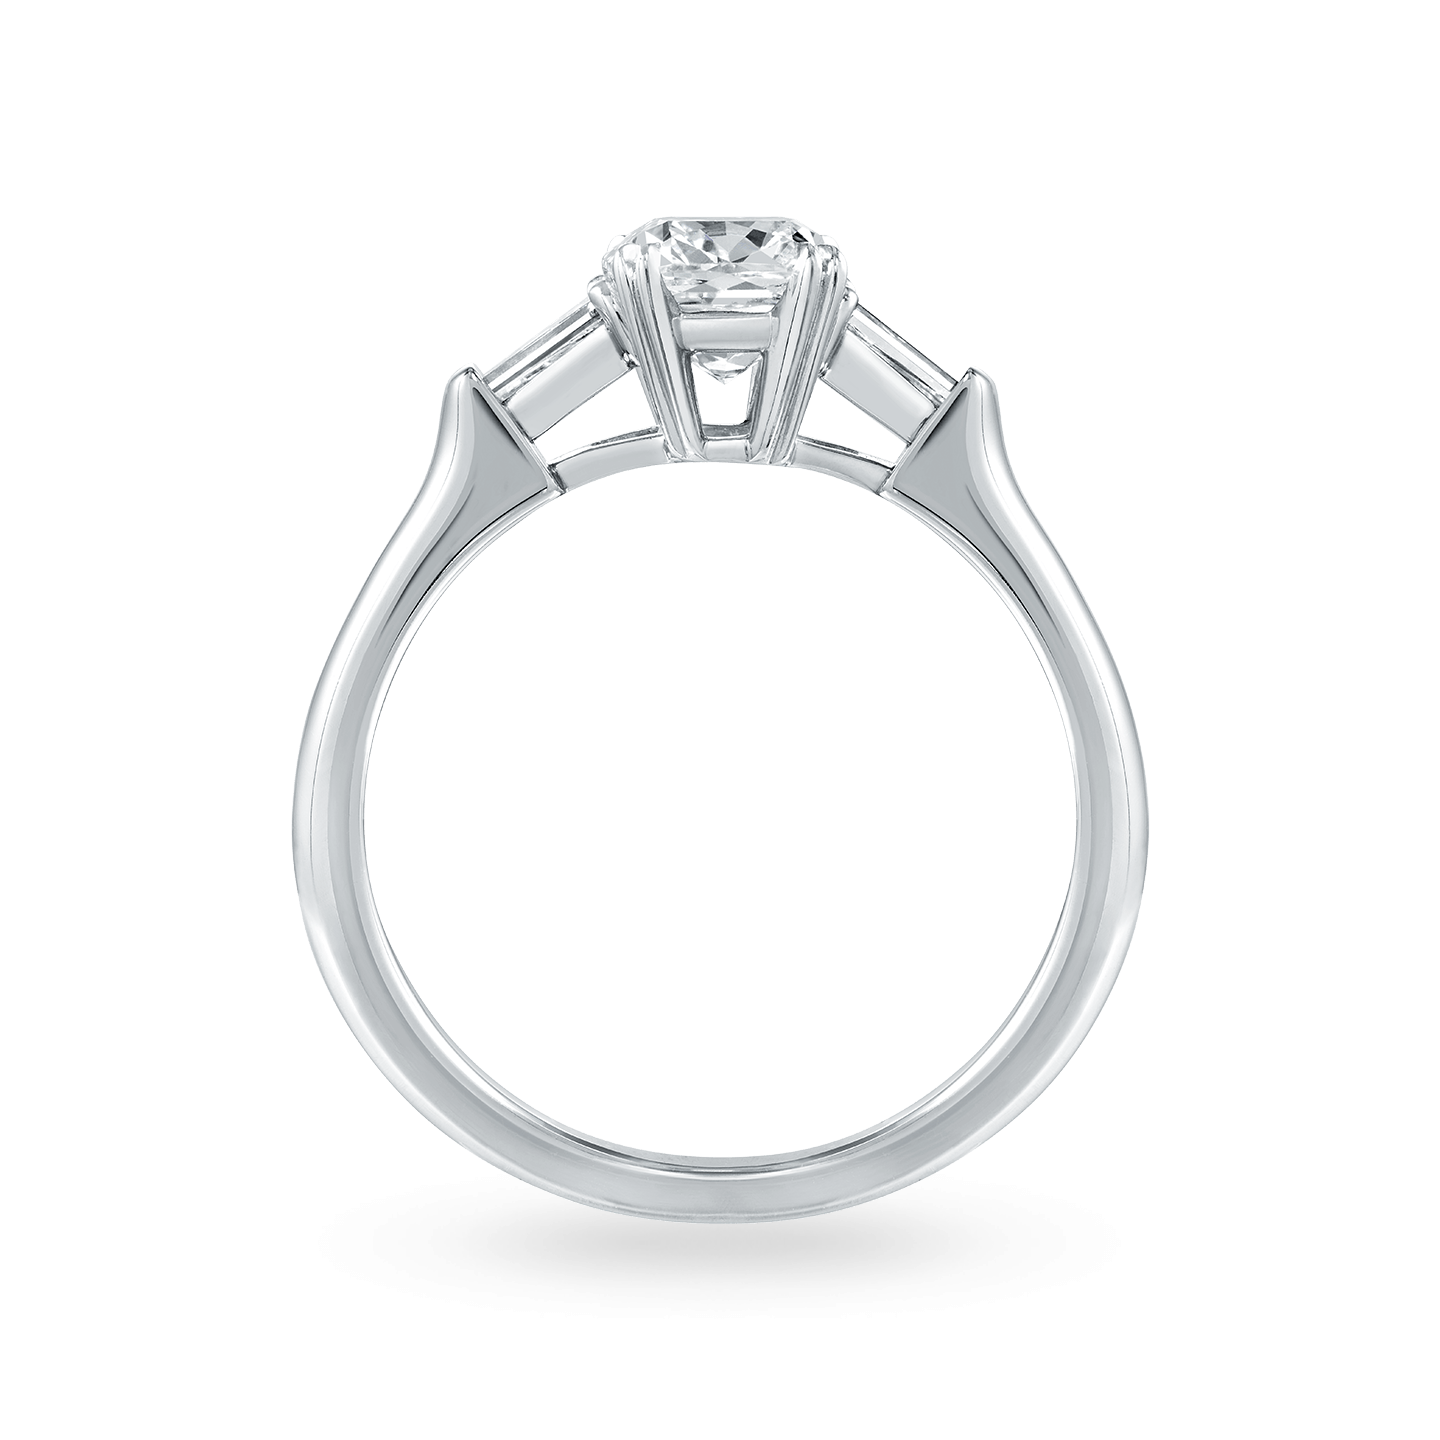 Classic Winston Cushion-Cut Engagement Ring with Tapered Baguette Side Stones, Product Image 2